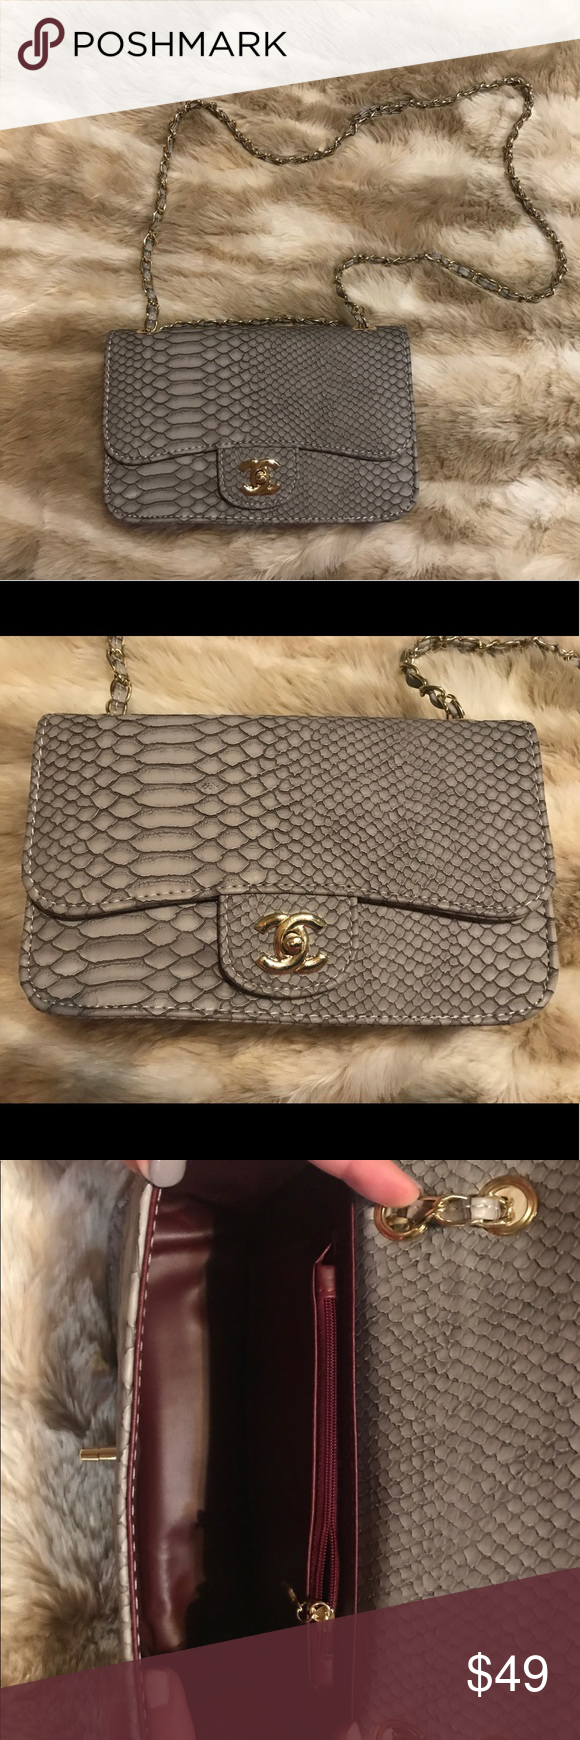 80a8802baddd Coco snakeskin crossbody Grey, New! 💥💥INSPIRED COCO CHANEL💥💥 not real  leather. New never used Bags Crossbody Bags